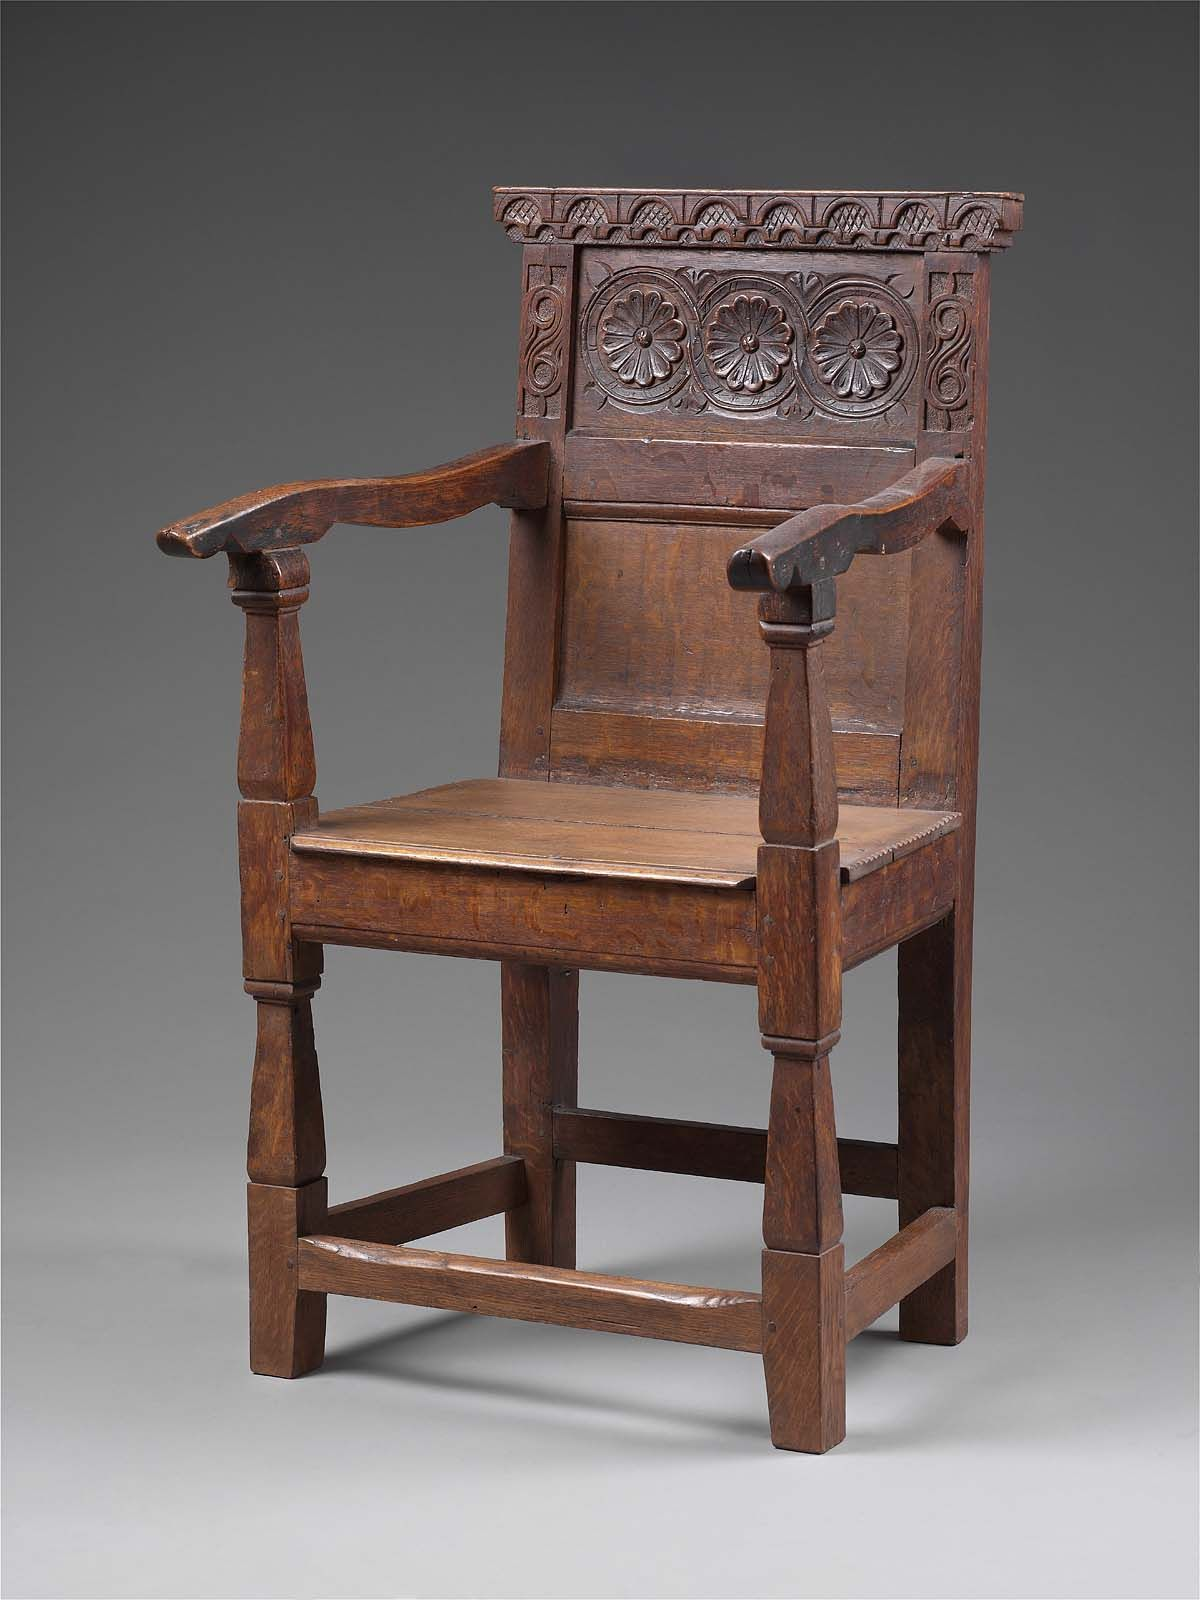 A Wainscot Chair, With The Upper Panel Of The Two Paneled Back Carved With  A Bold Guilloche Containing Three Rosettes. The Guilloche Bands Are Sharply  ...